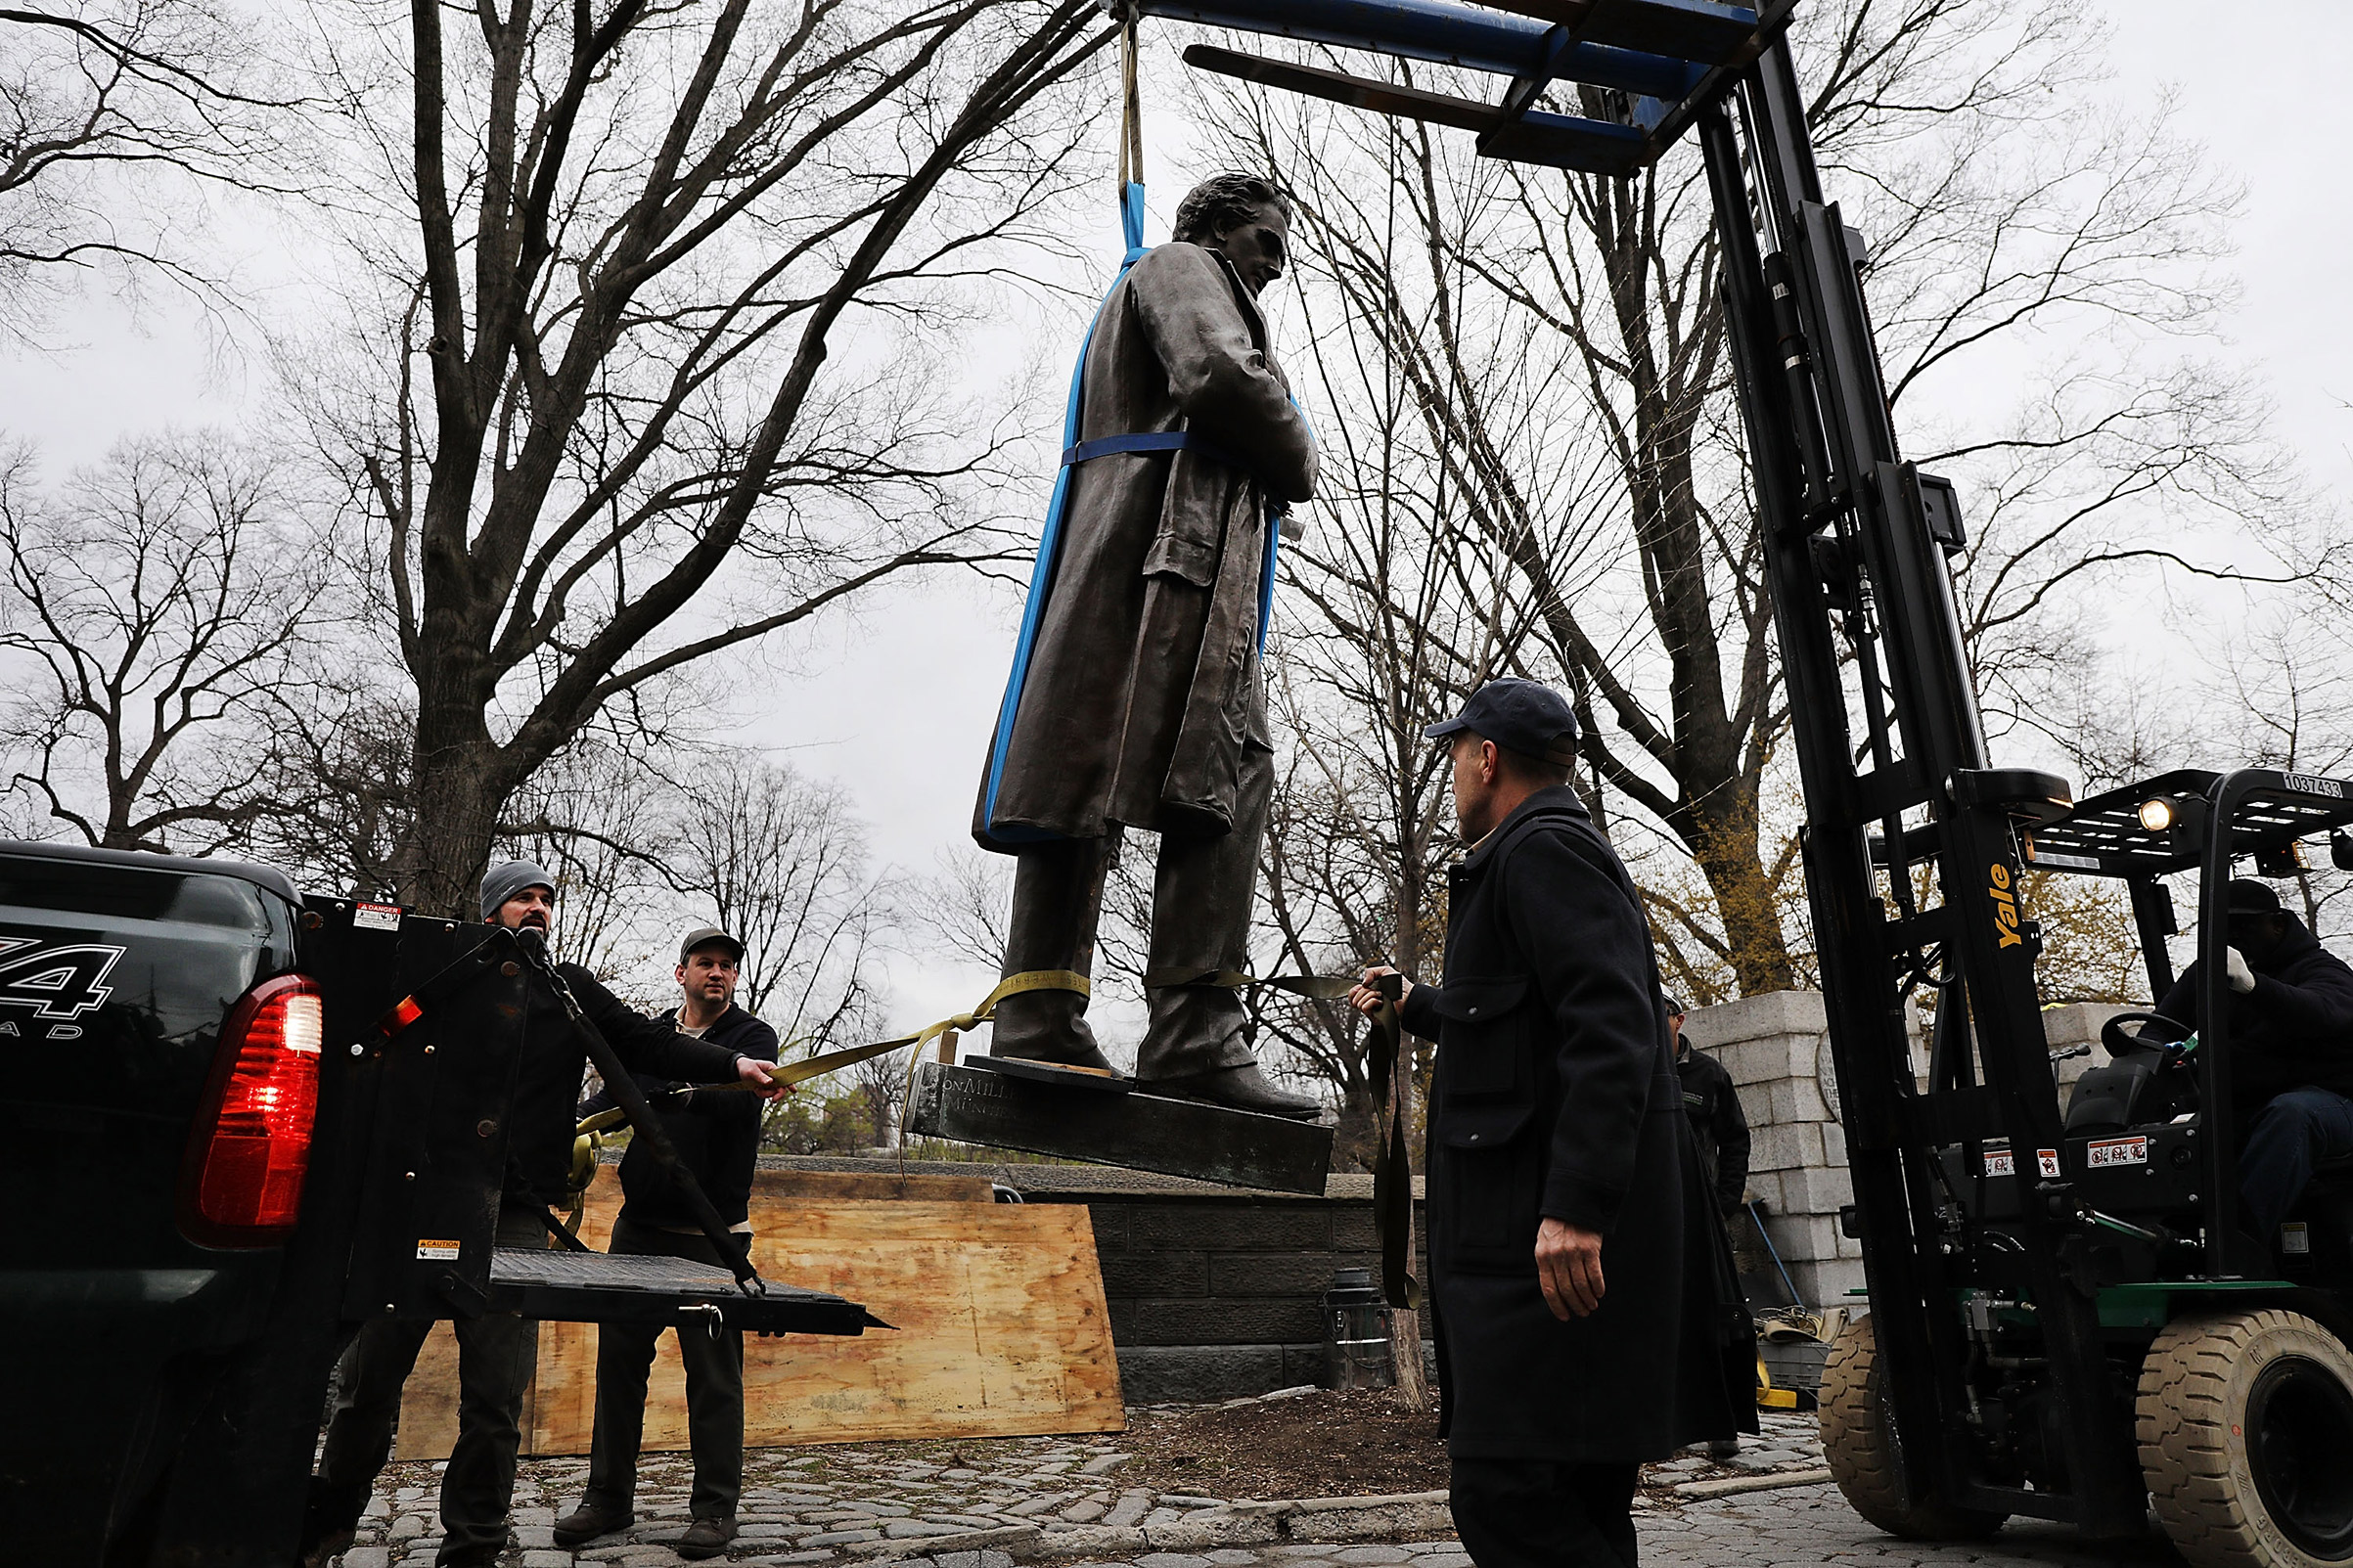 A statue of J. Marion Sims, who was a prominent gynecologist, is loaded onto a New York City Department of Parks & Recreation truck after being taken down from its pedestal bordering Central Park on East 103rd Street on April 17, 2018.